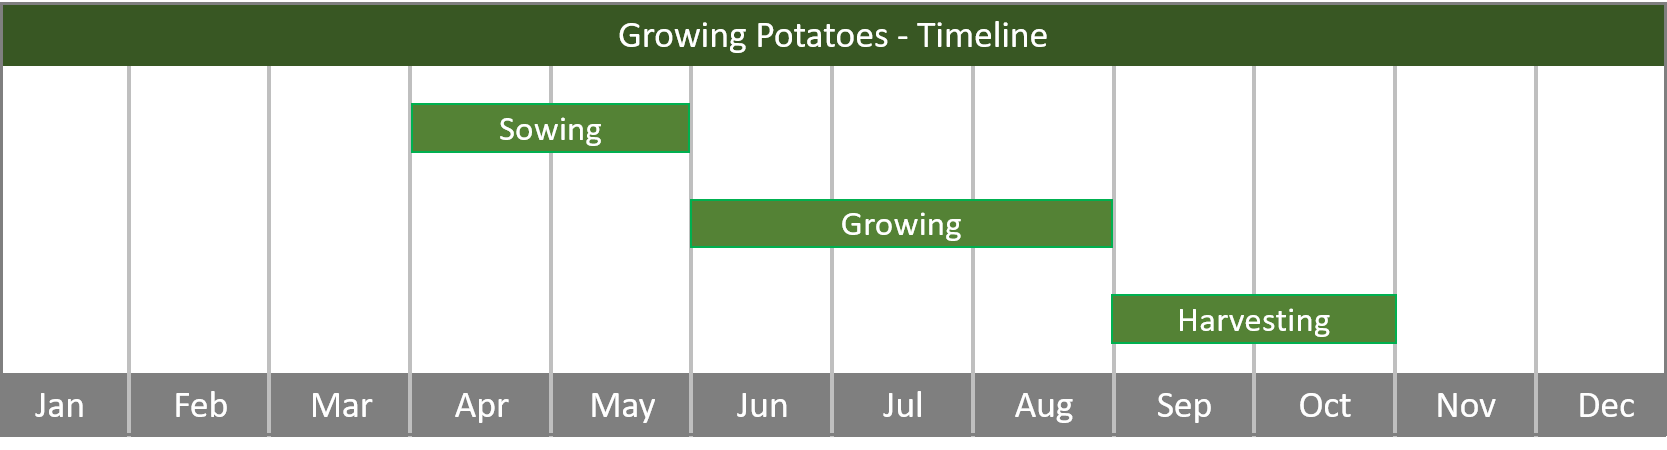 how to grow potatoes from seed to harvest timeline